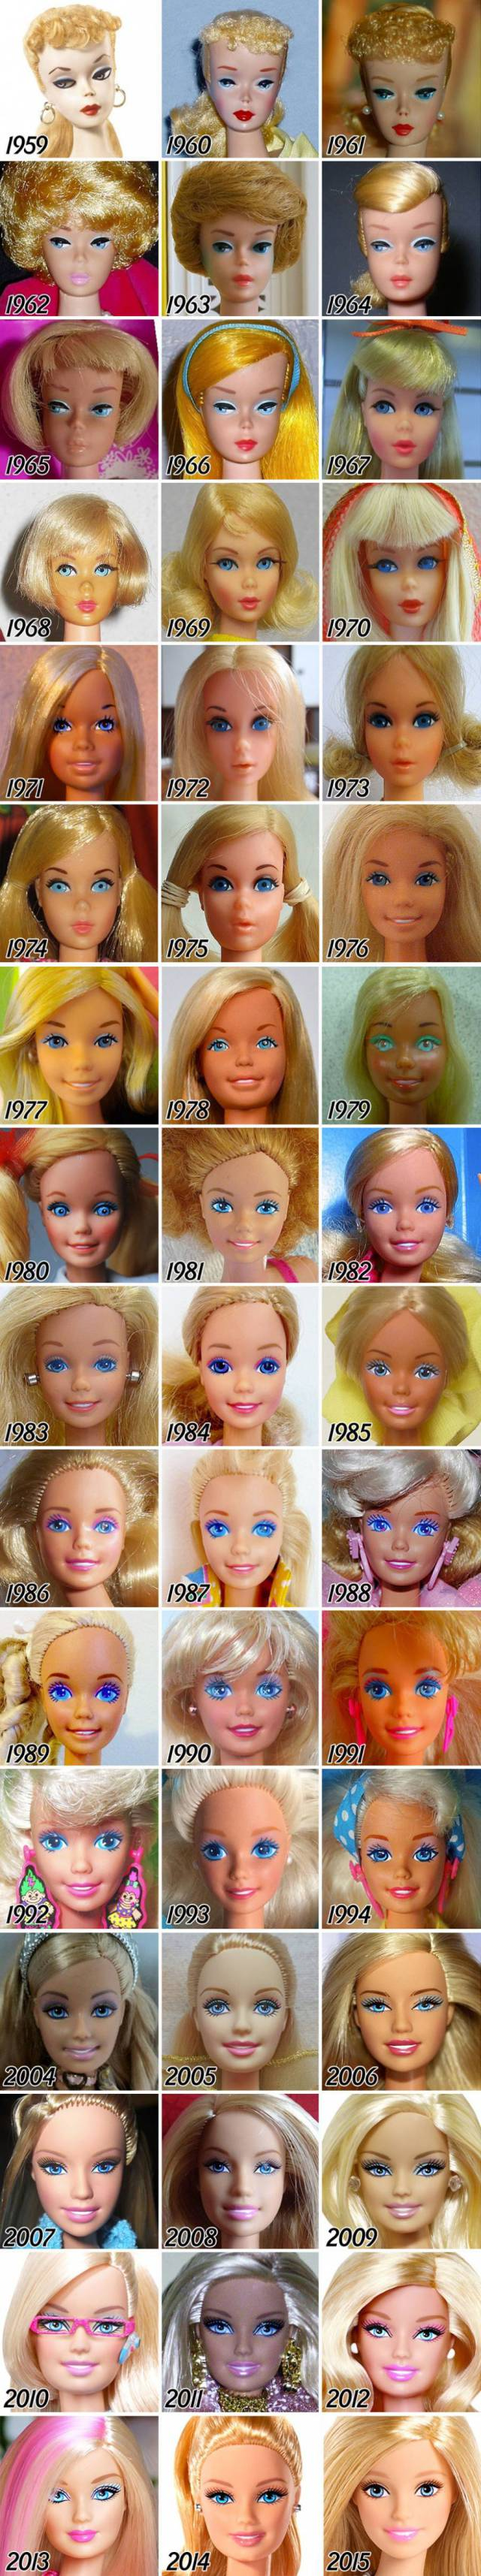 The 50-Years Evolution Of The World-Famous Doll - Barbie